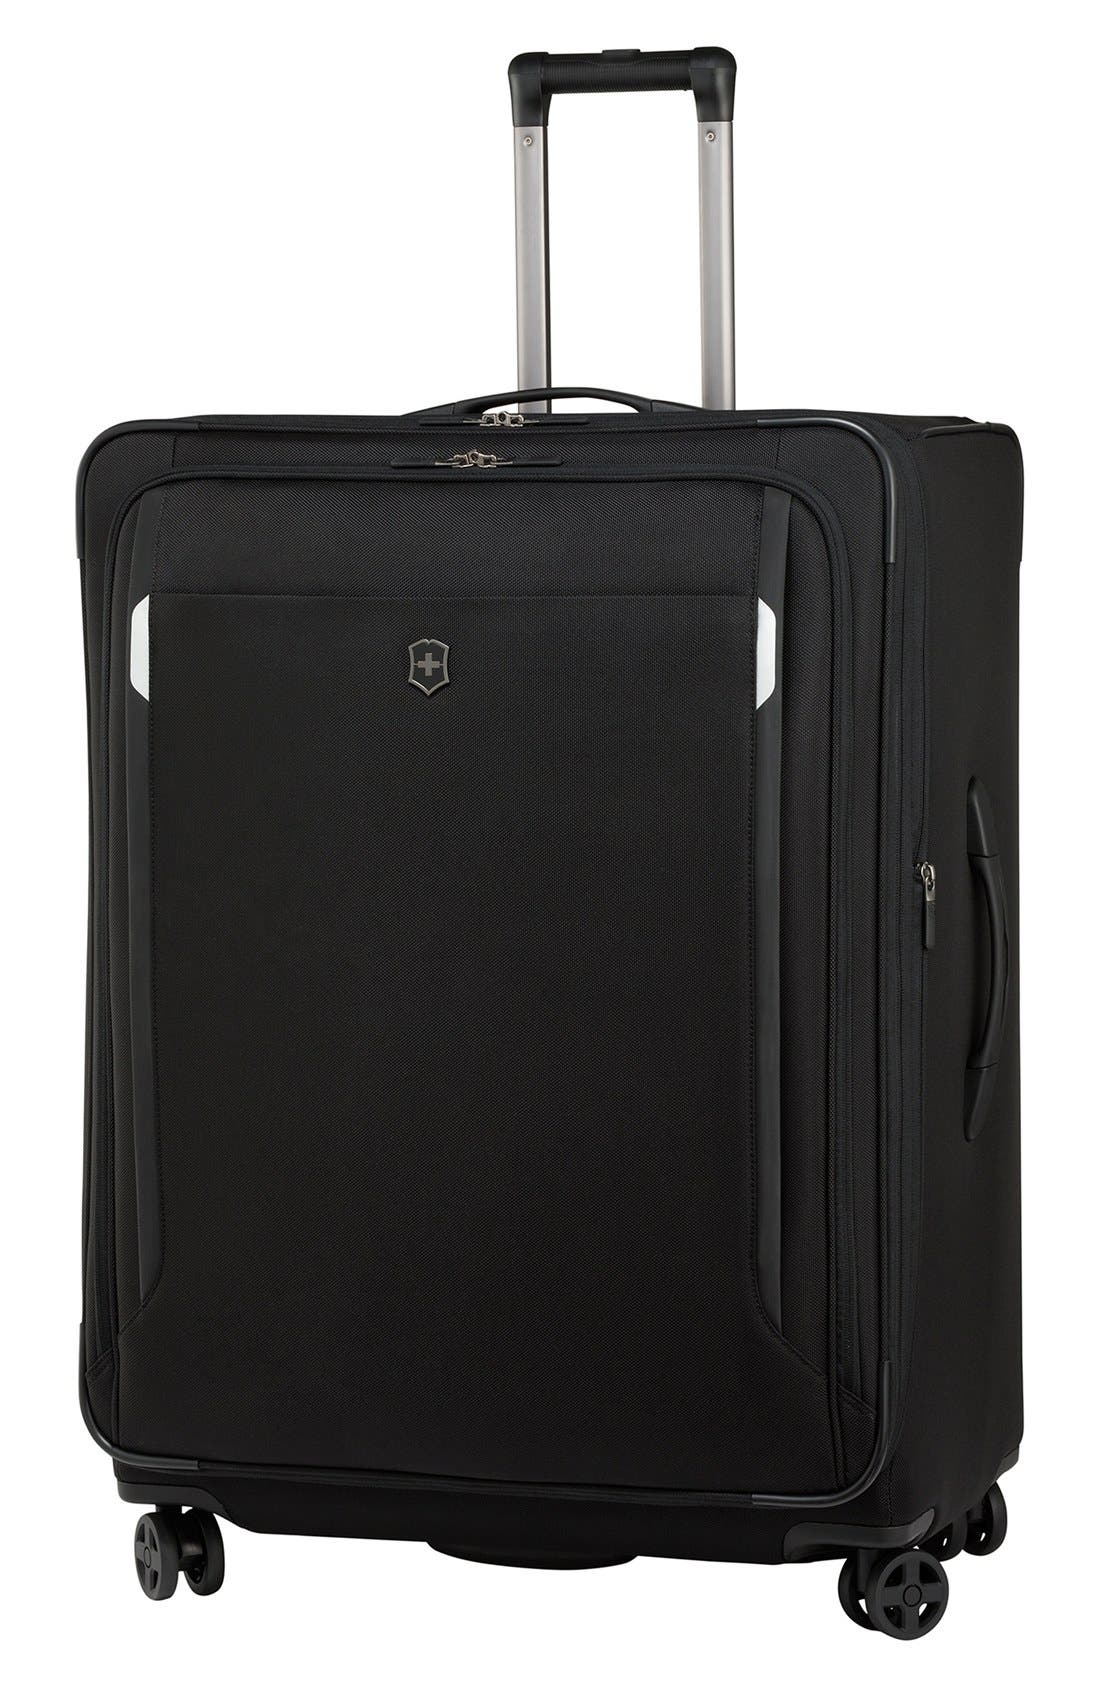 Alternate Image 1 Selected - Victorinox Swiss Army® 'WT 5.0' Dual Caster Wheeled Packing Case (30 Inch)